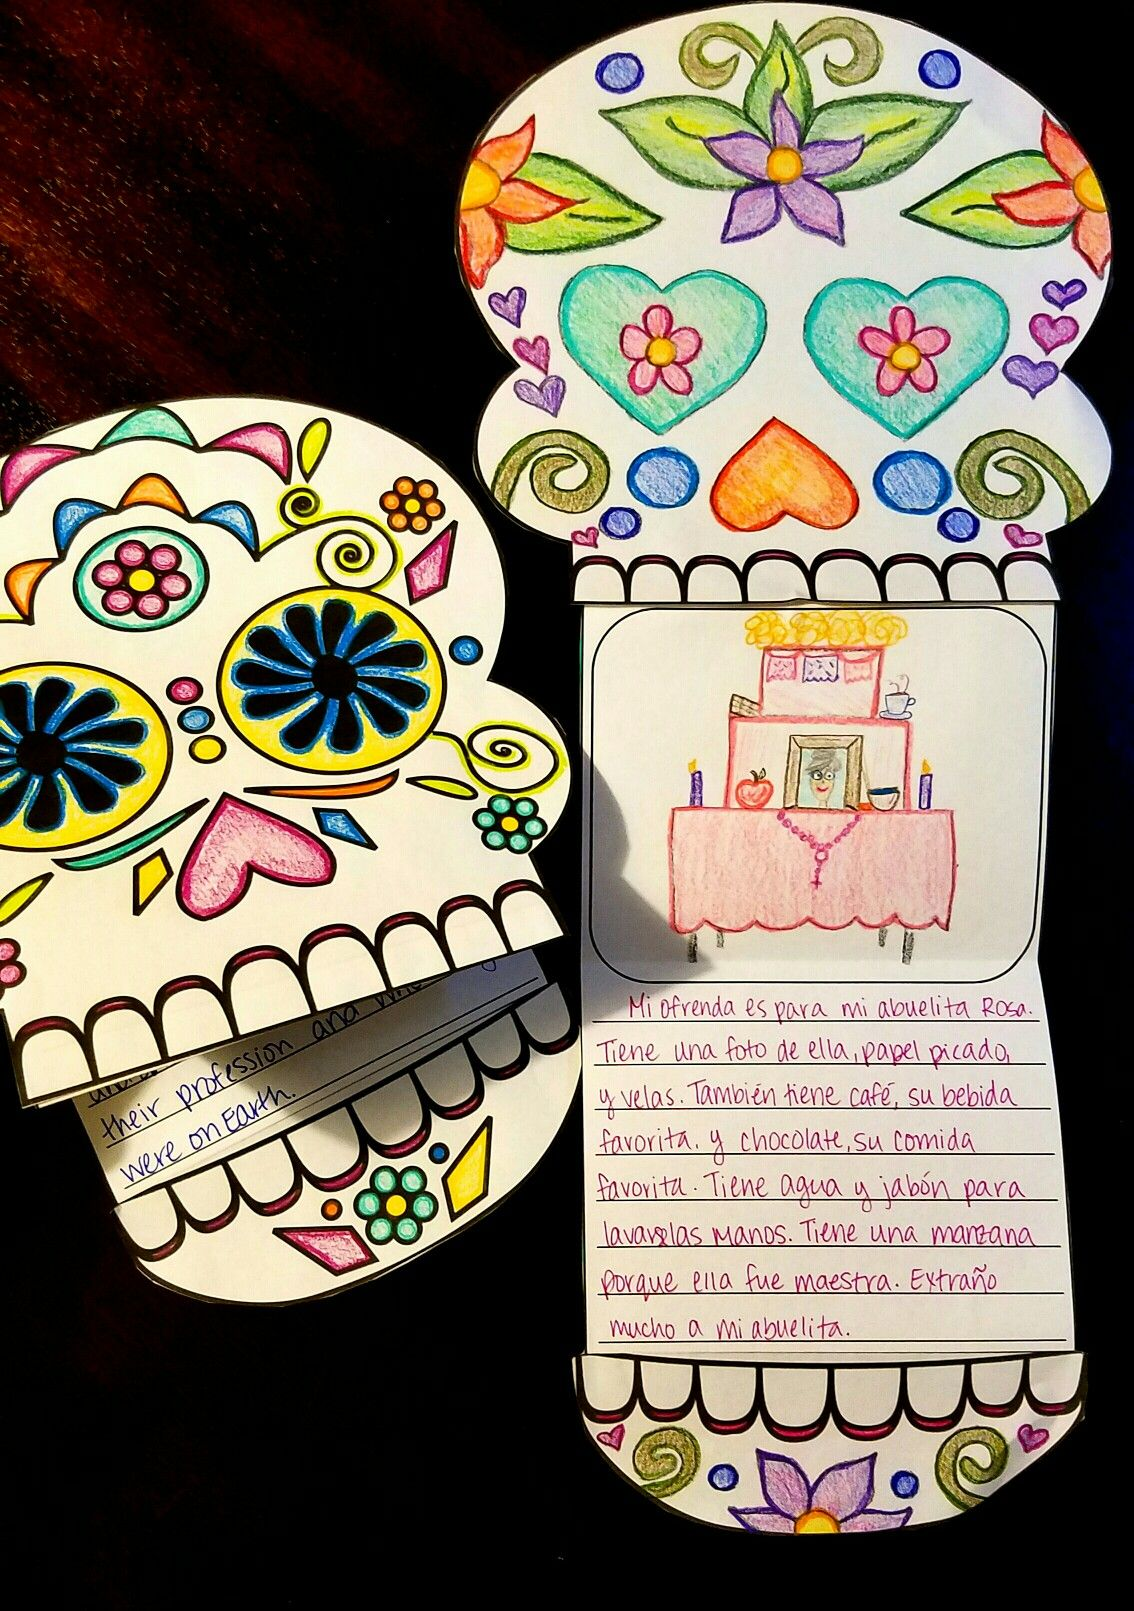 d atilde shy a de los muertos day of the dead writing template dia de writing template for datildeshya de los muertos day of the dead after students learn about